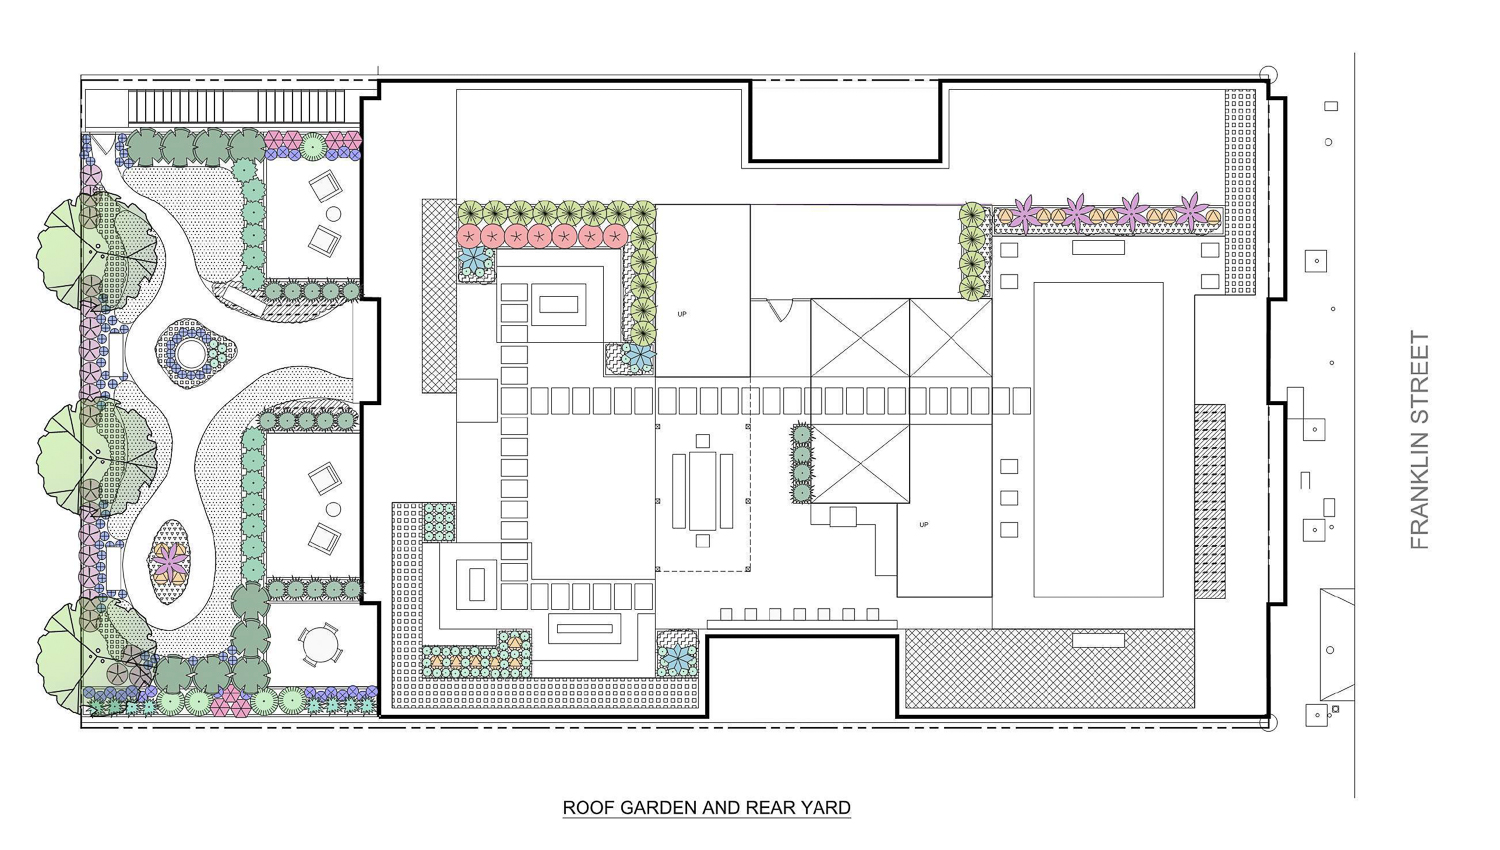 807 Franklin Street roof and backyard garden, illustration by Integrated Design Studio